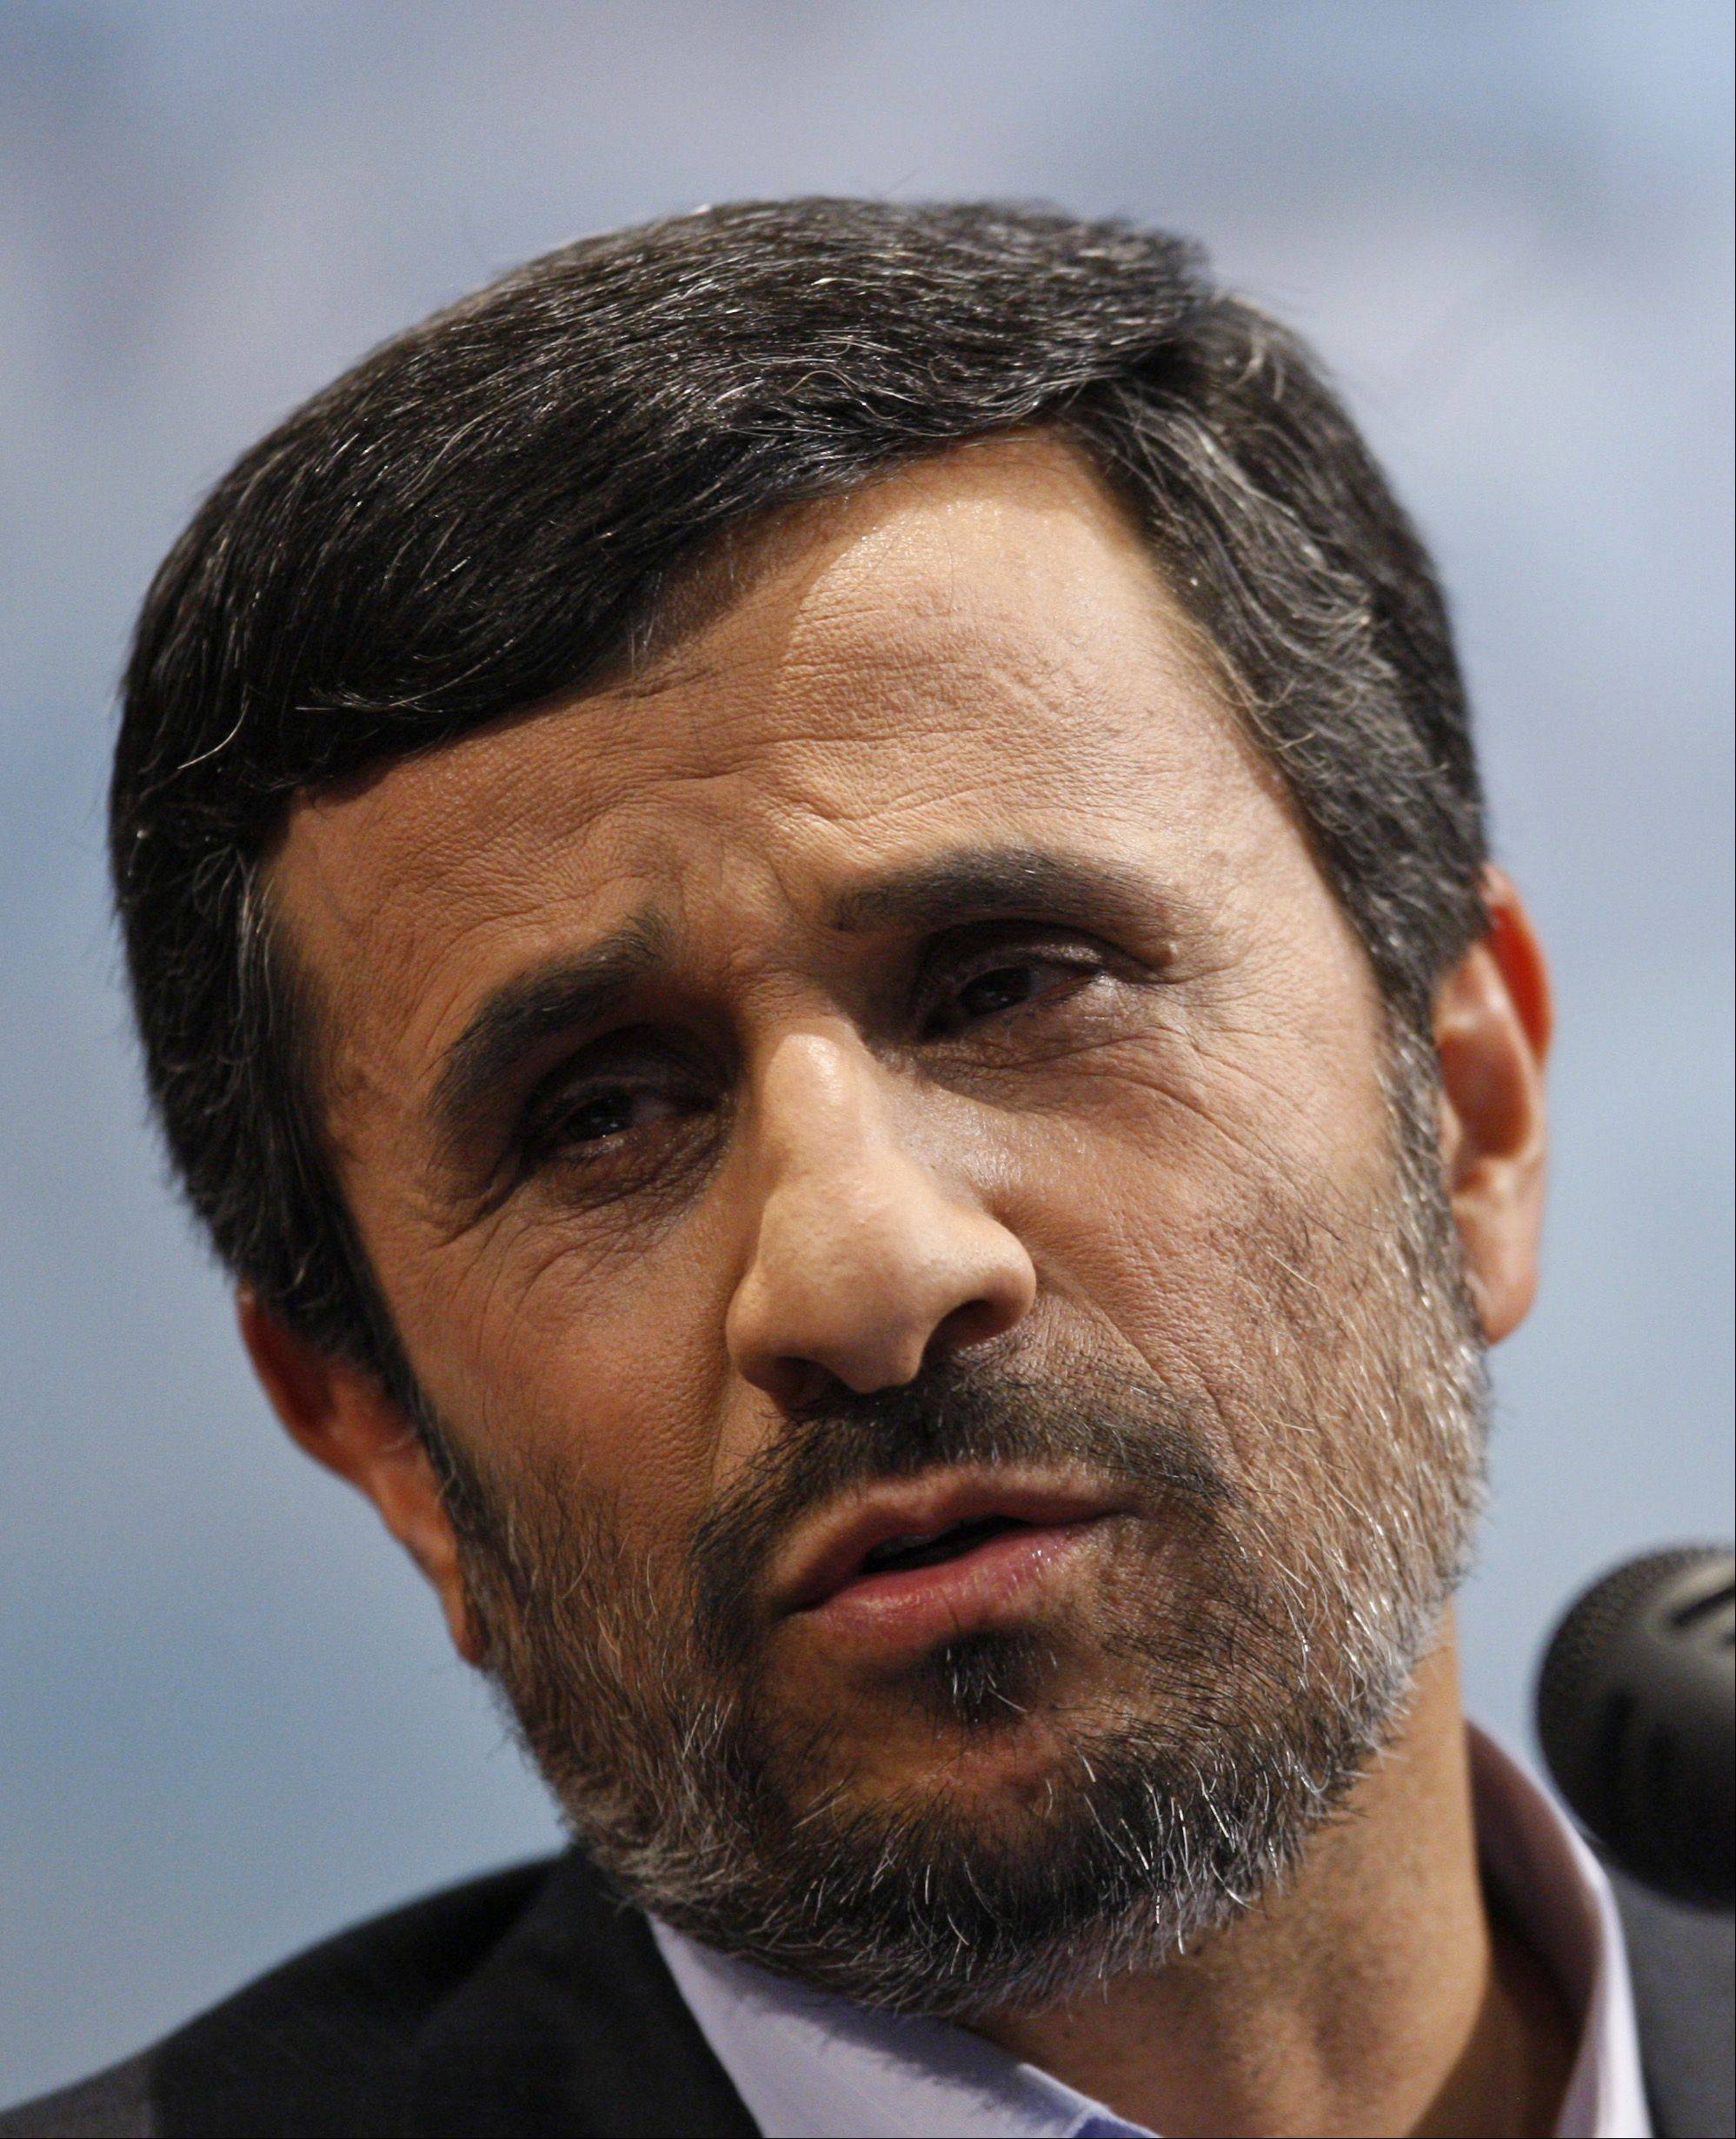 President Mahmoud Ahmadinejad said Monday that he's ready to take the risk of being the first Iranian astronaut sent into space as part of Iran's goal of a manned space flight.